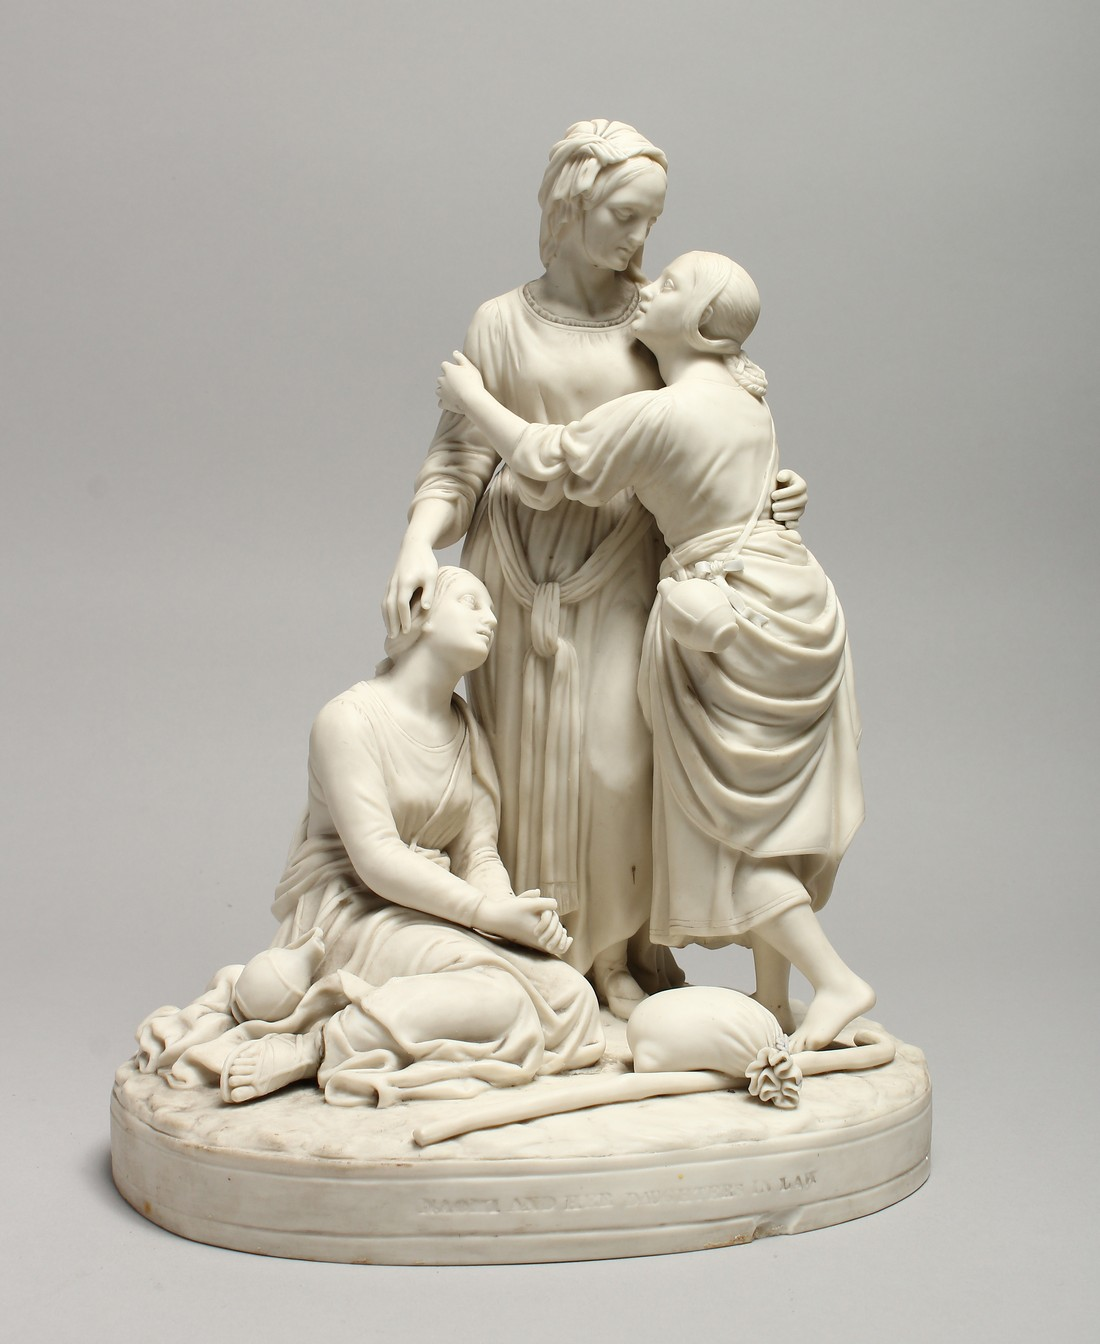 """A LATE 19TH CENTURY PARIAN WARE GROUP """"NAOMI AND HER DAUGHTER IN LAW"""". 13 ins high."""